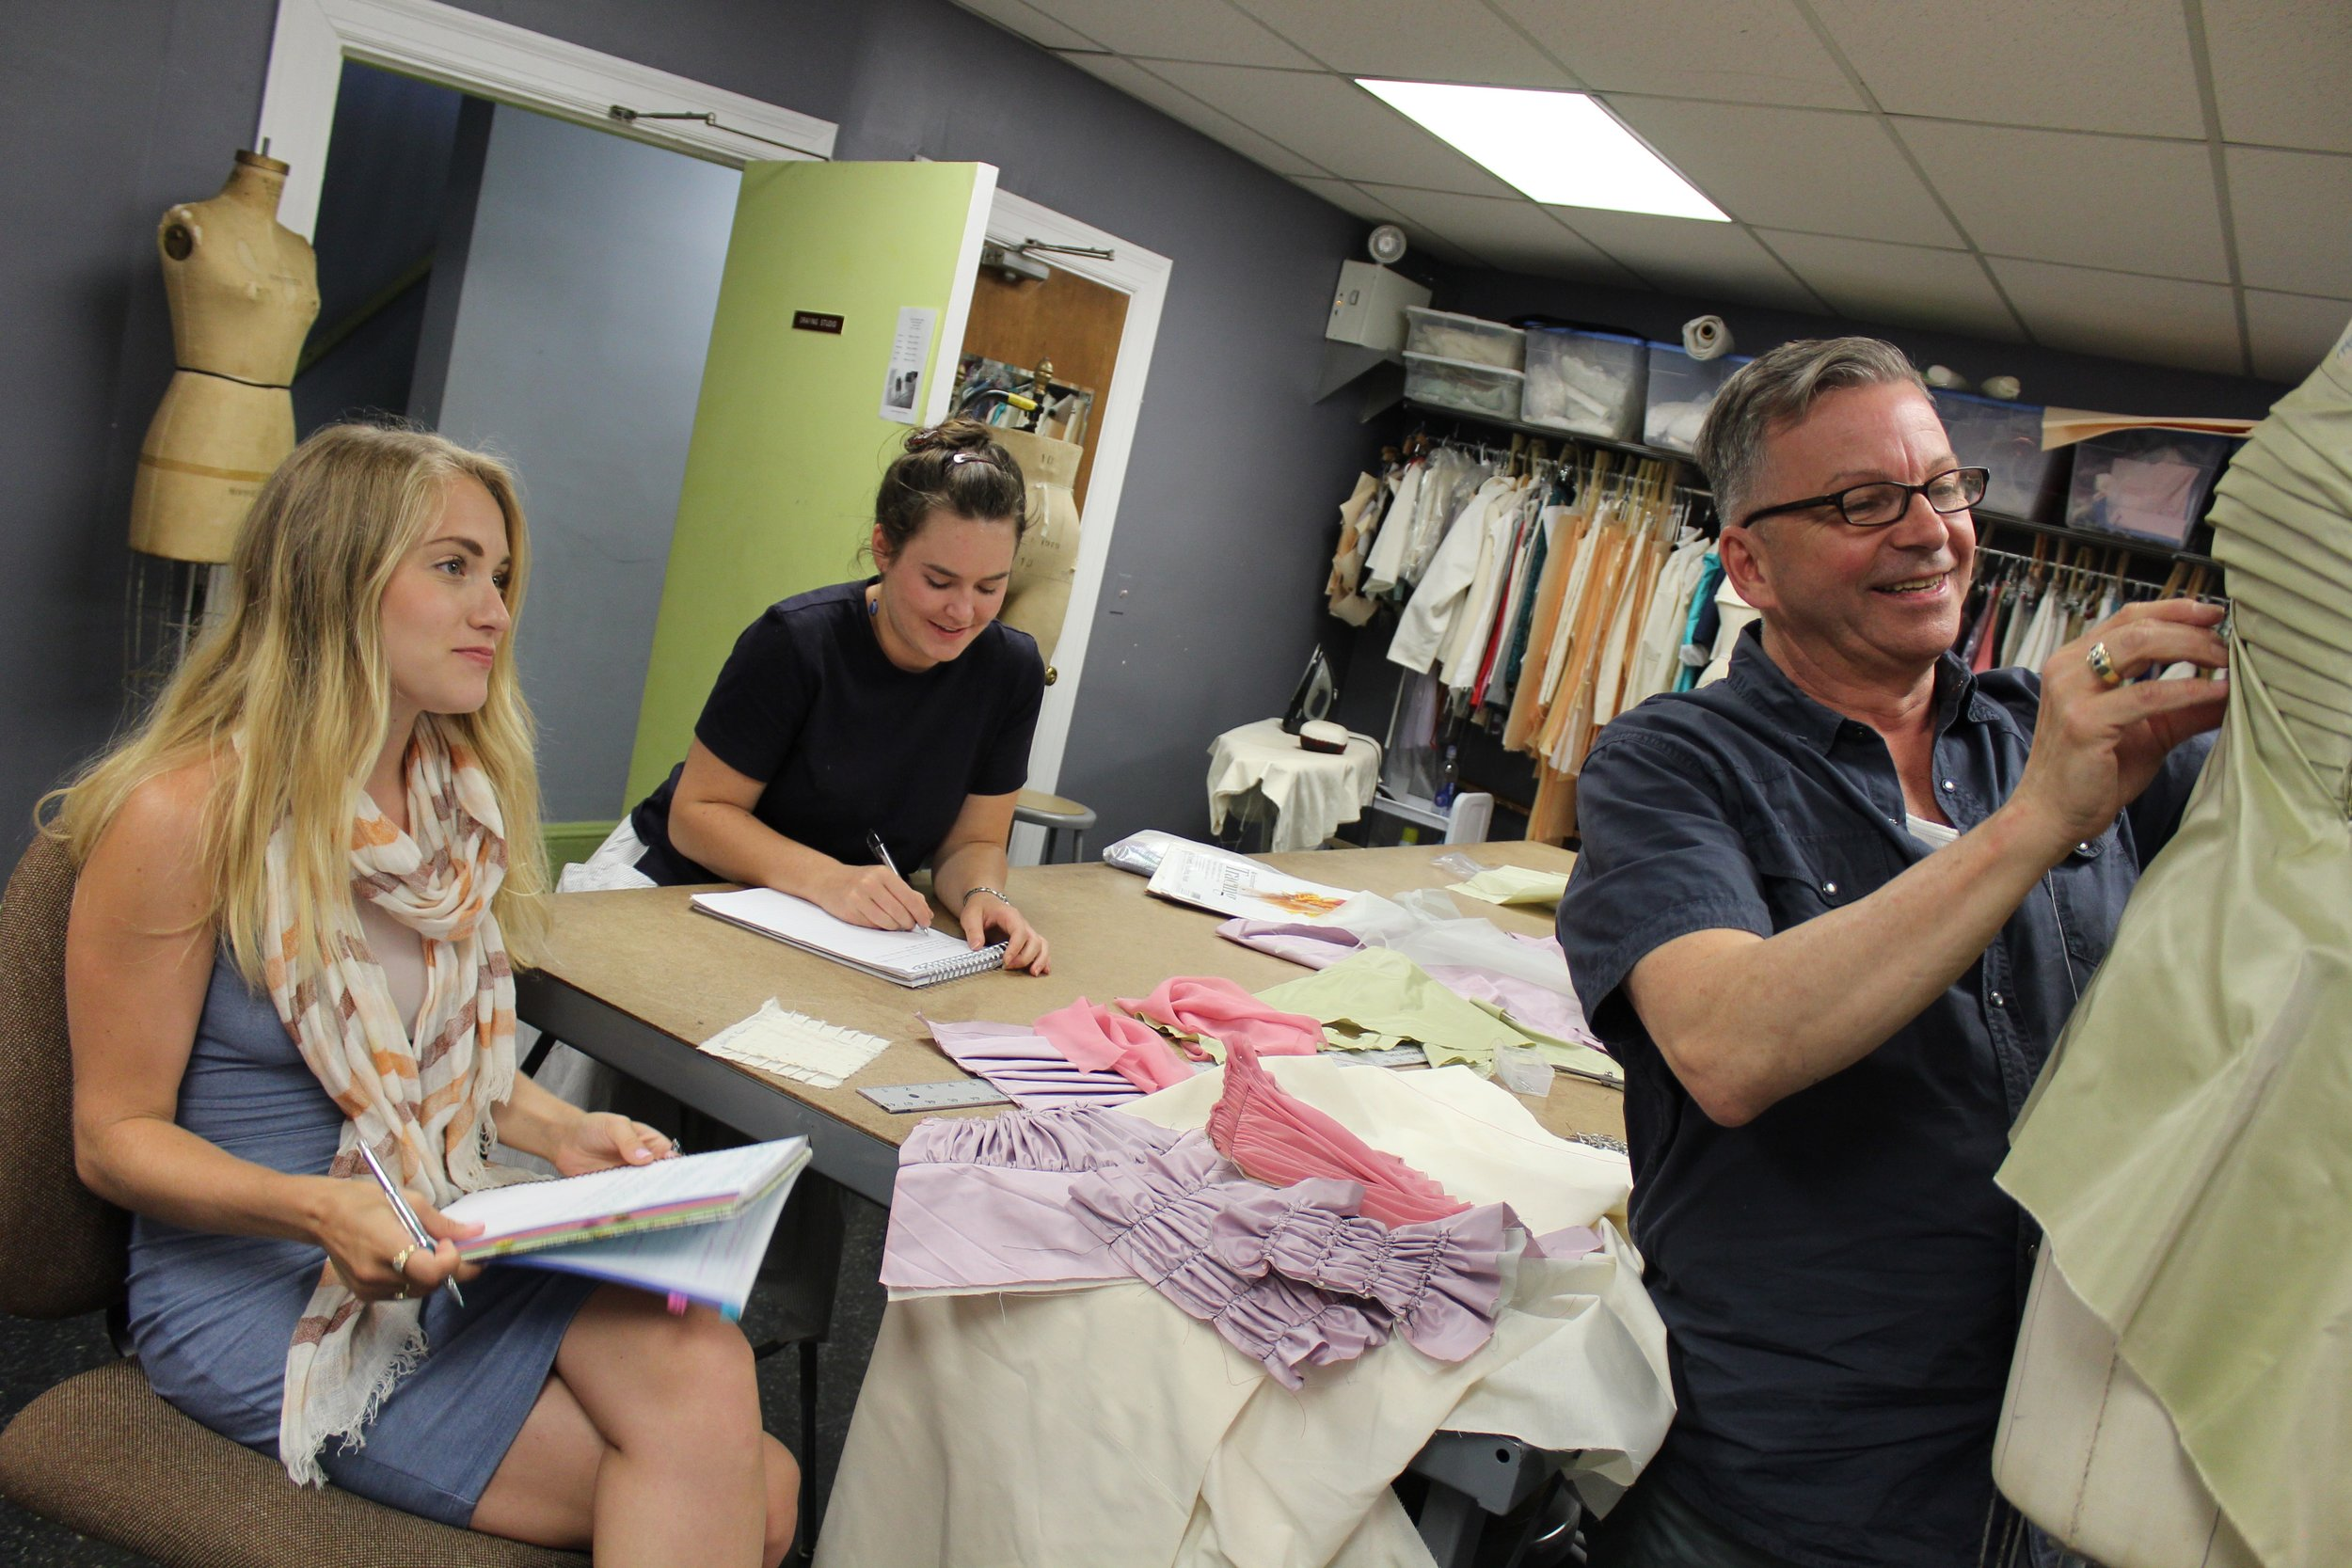 Fashion Design Courses In Boston School Of Fashion Design